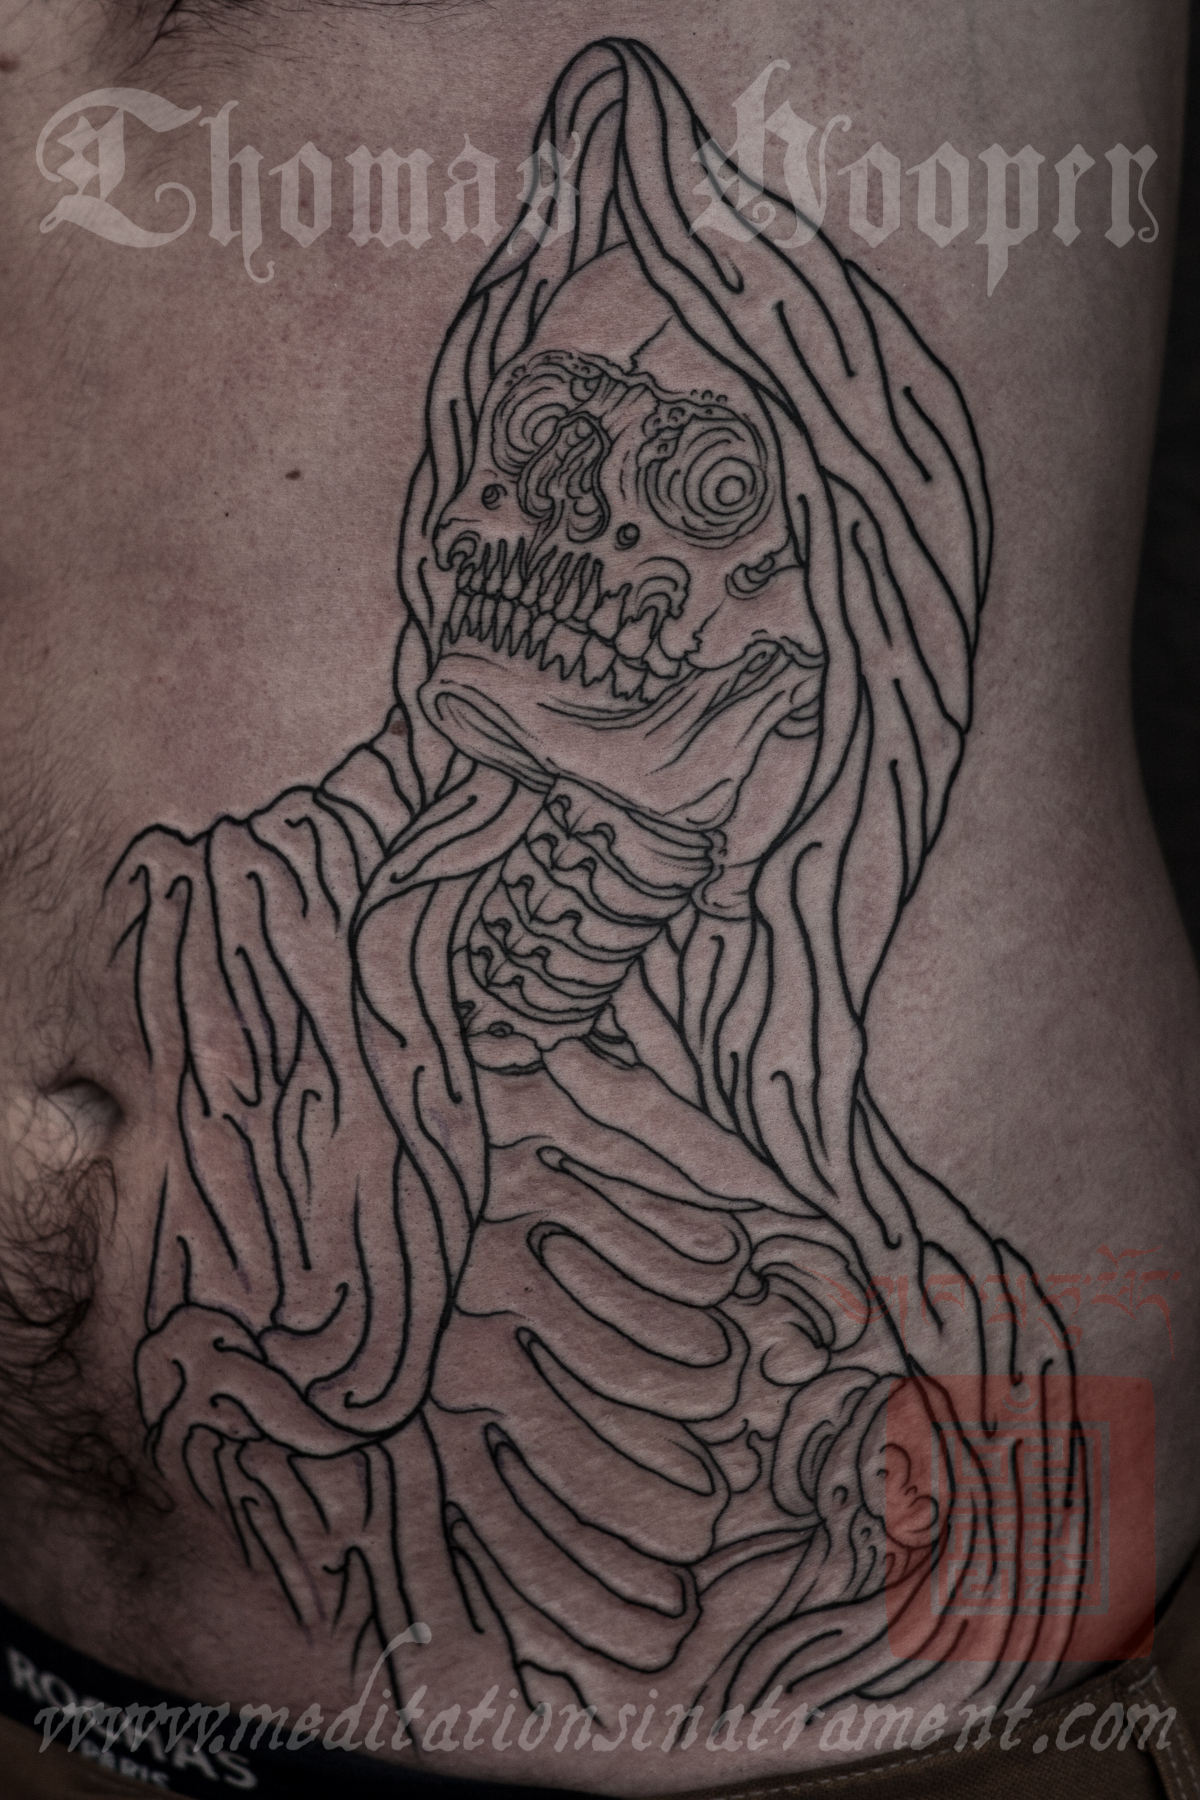 crew skull tattooing